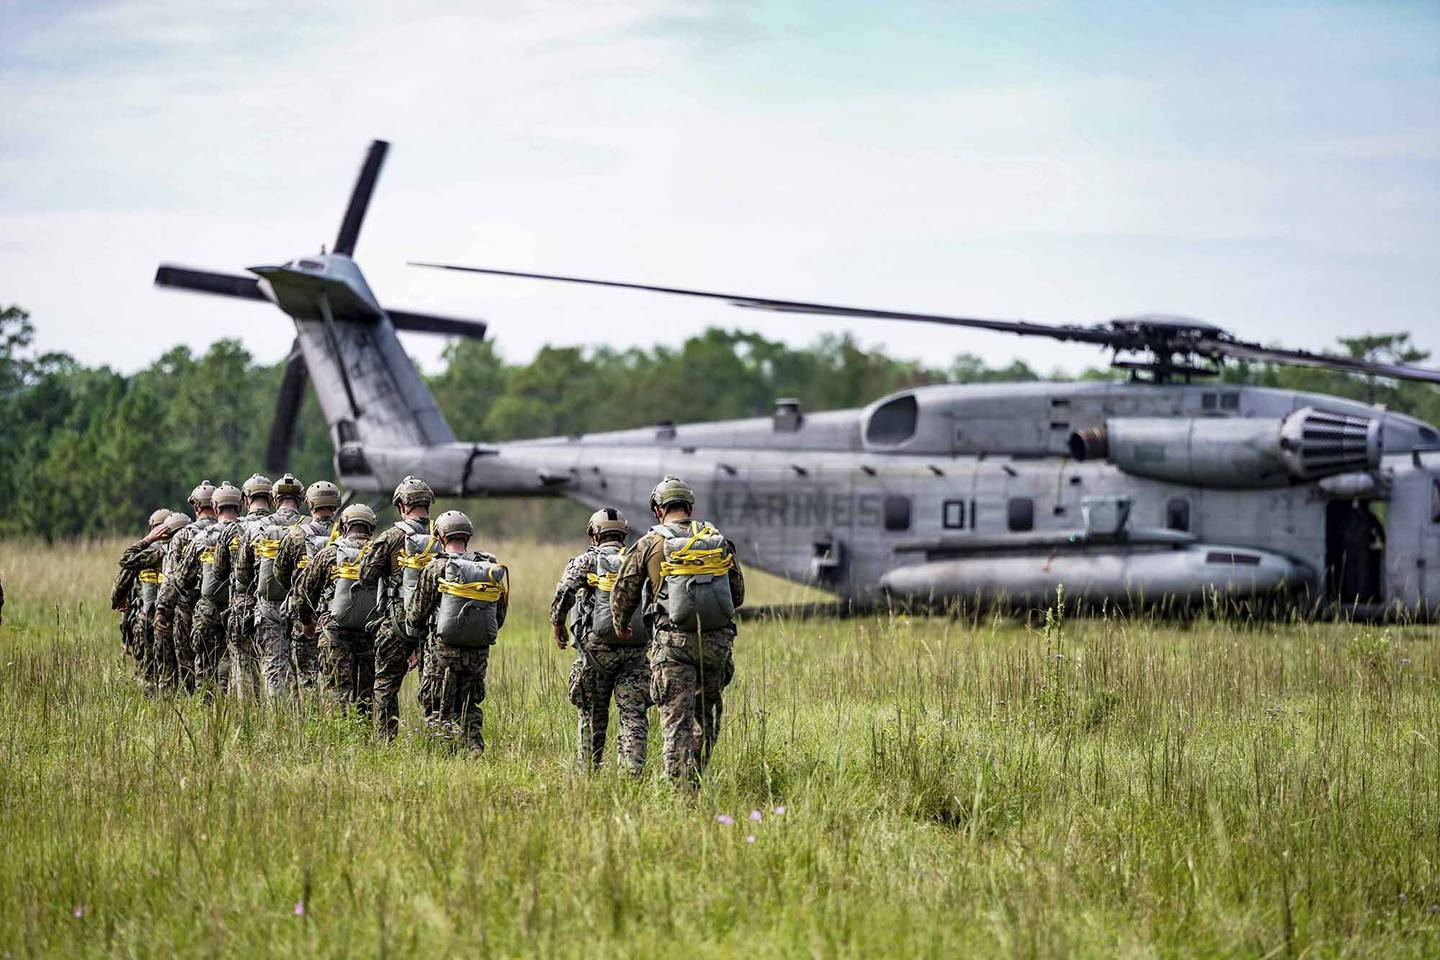 Marines with 3rd Force Reconnaissance Company, 4th Marine Division prepare to static line jump out of a CH-53 Super Stallion during an airborne operations event at Camp Shelby, Miss., Oct. 6, 2020.